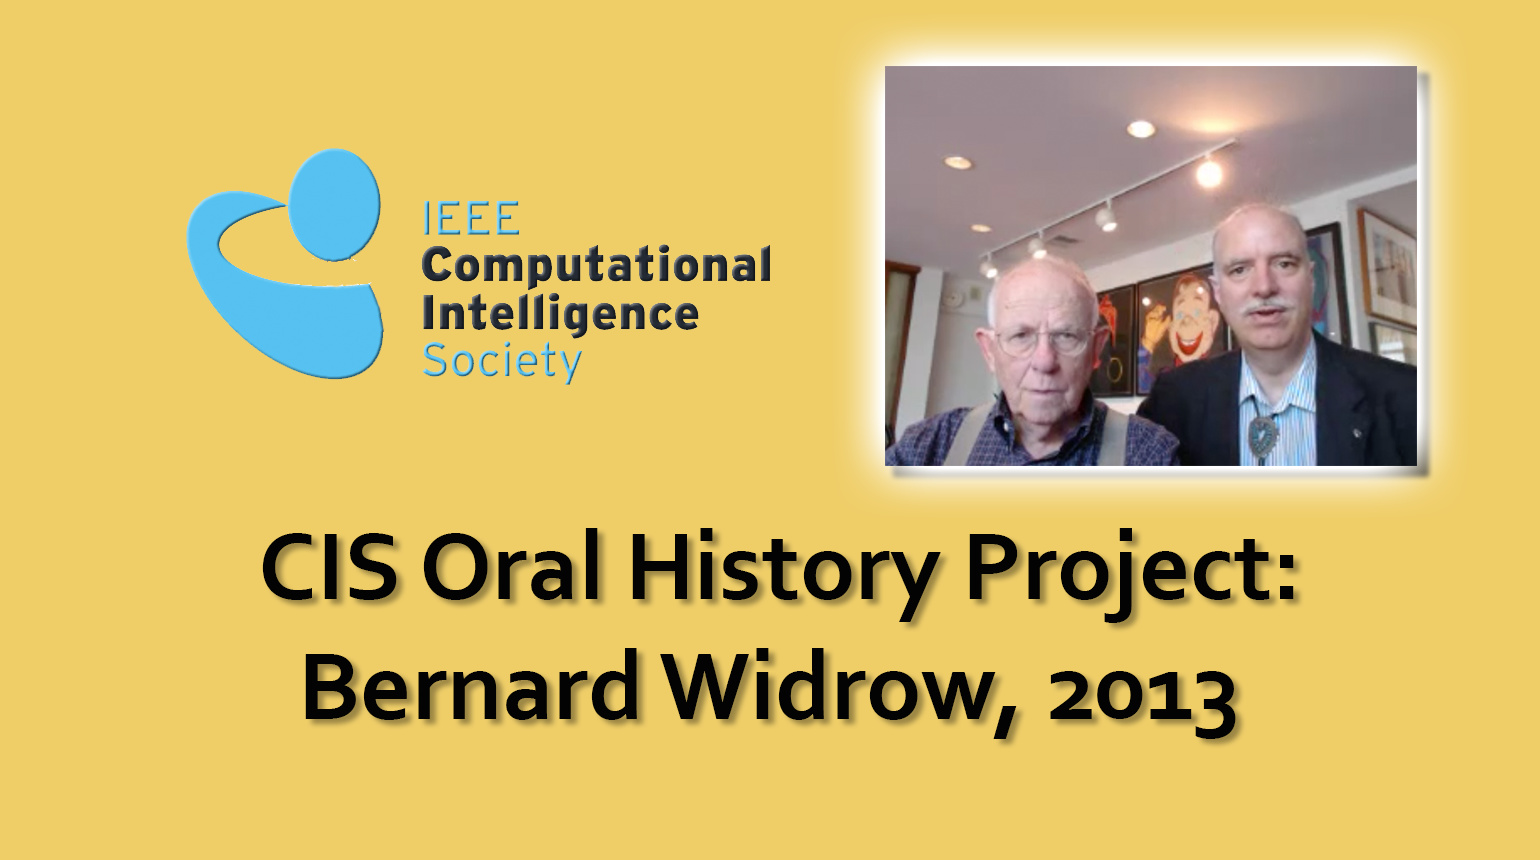 Interview with Bernard Widrow, 2013: CIS Oral History Project